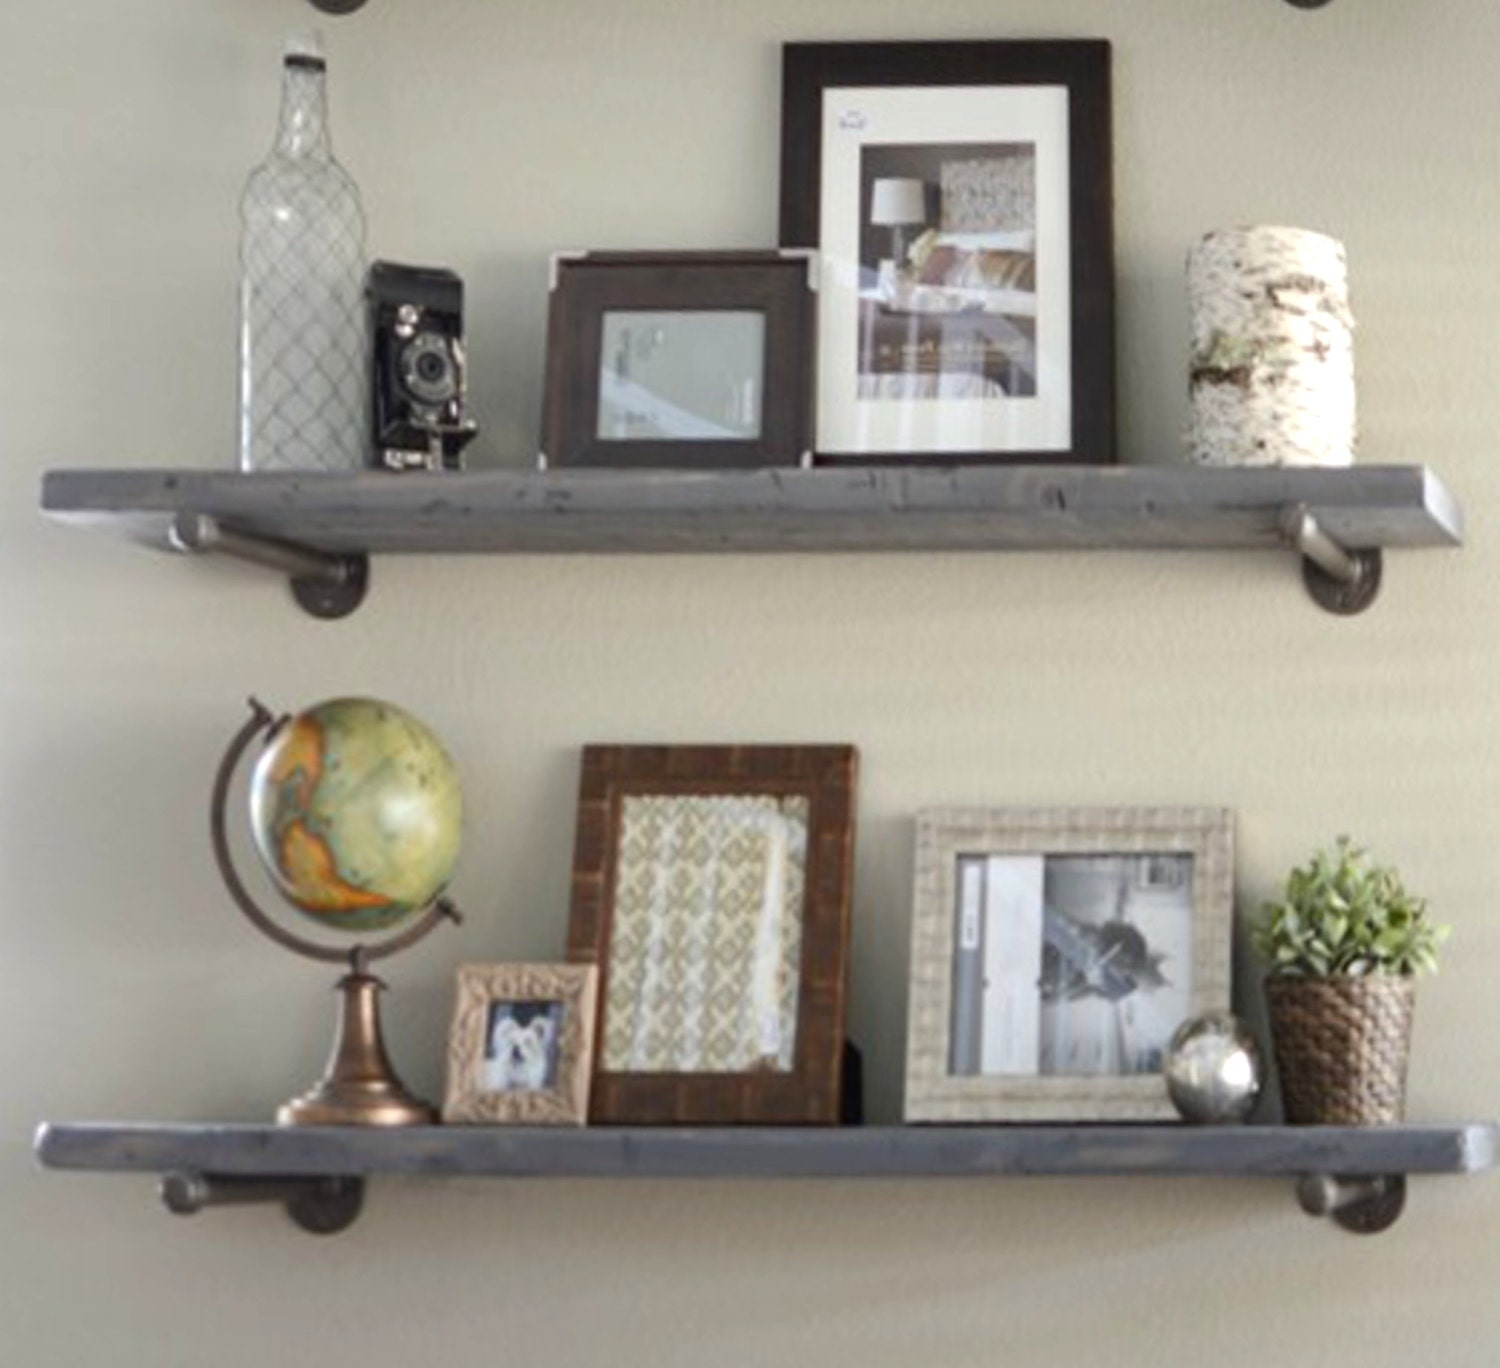 Rustic Kitchen Shelving 2 Shelf Combo 10 Deep Industrial Floating Shelves